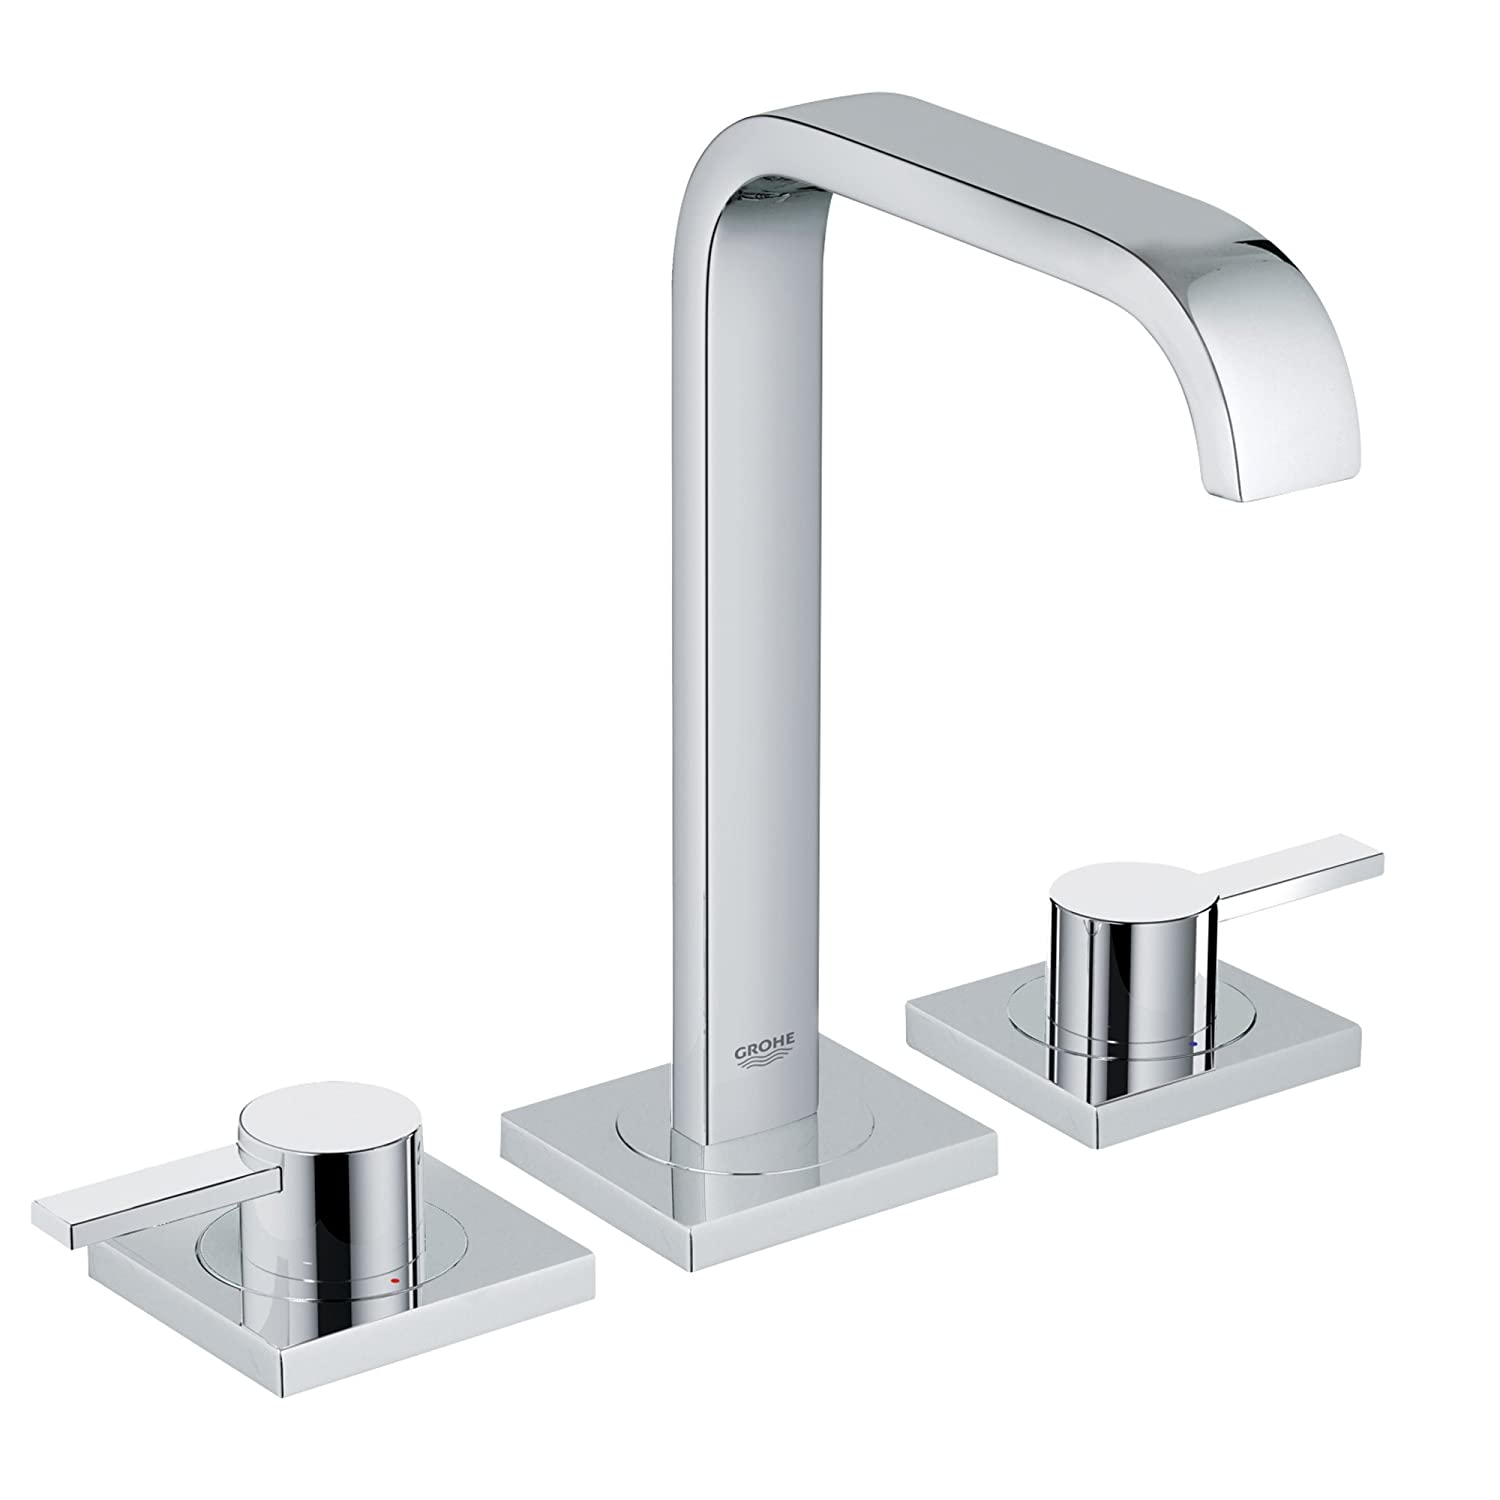 Grohe 20191000 Allure 2-handle Bathroom Faucet - 1.5 GPM - Touch On ...